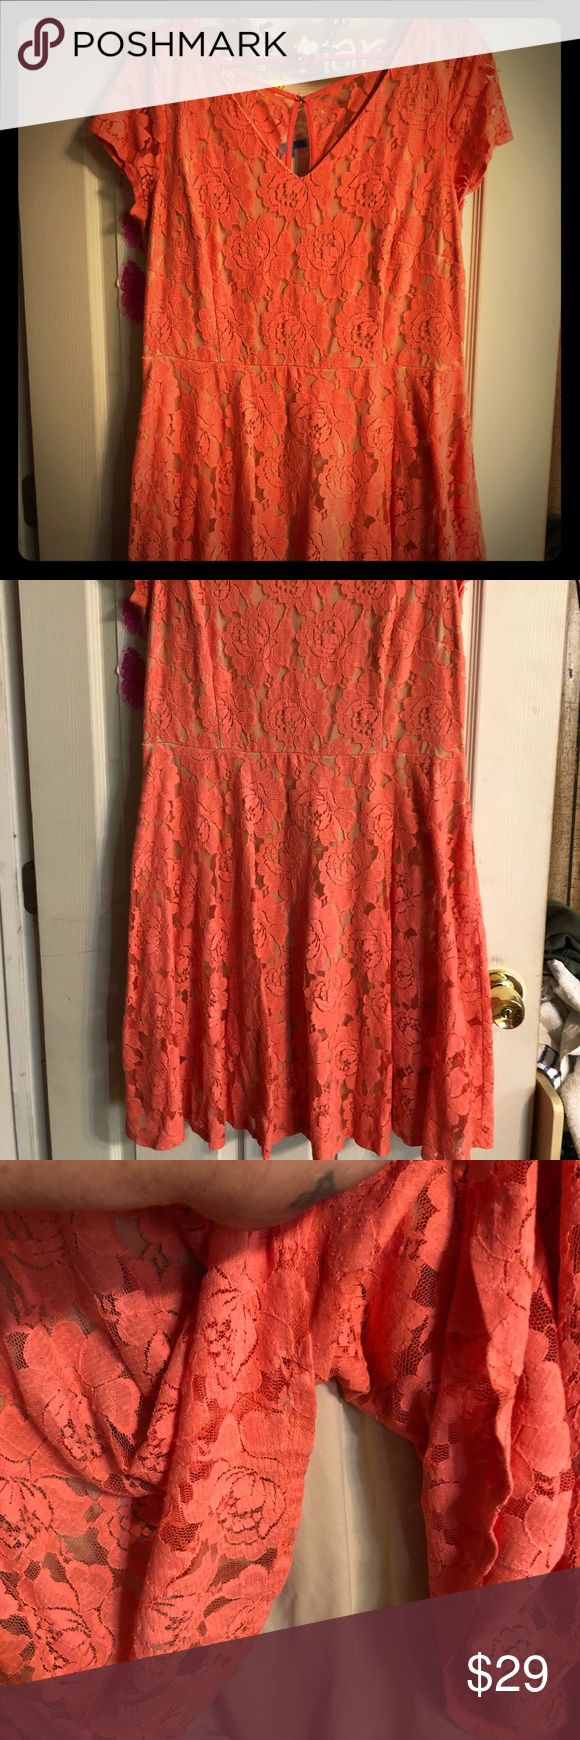 NWT GORGEOUS CORAL/NUDE FASHION LACE DRESS NEW LACE CORAL PEACH LACE DRESS beige nude lining NO PILING PRACTICALLY NEW NEVER WORE NO TAGS. SAYS 18 but it's not it will fit someone that wears 14/16 Plus J. Taylor Dresses Midi